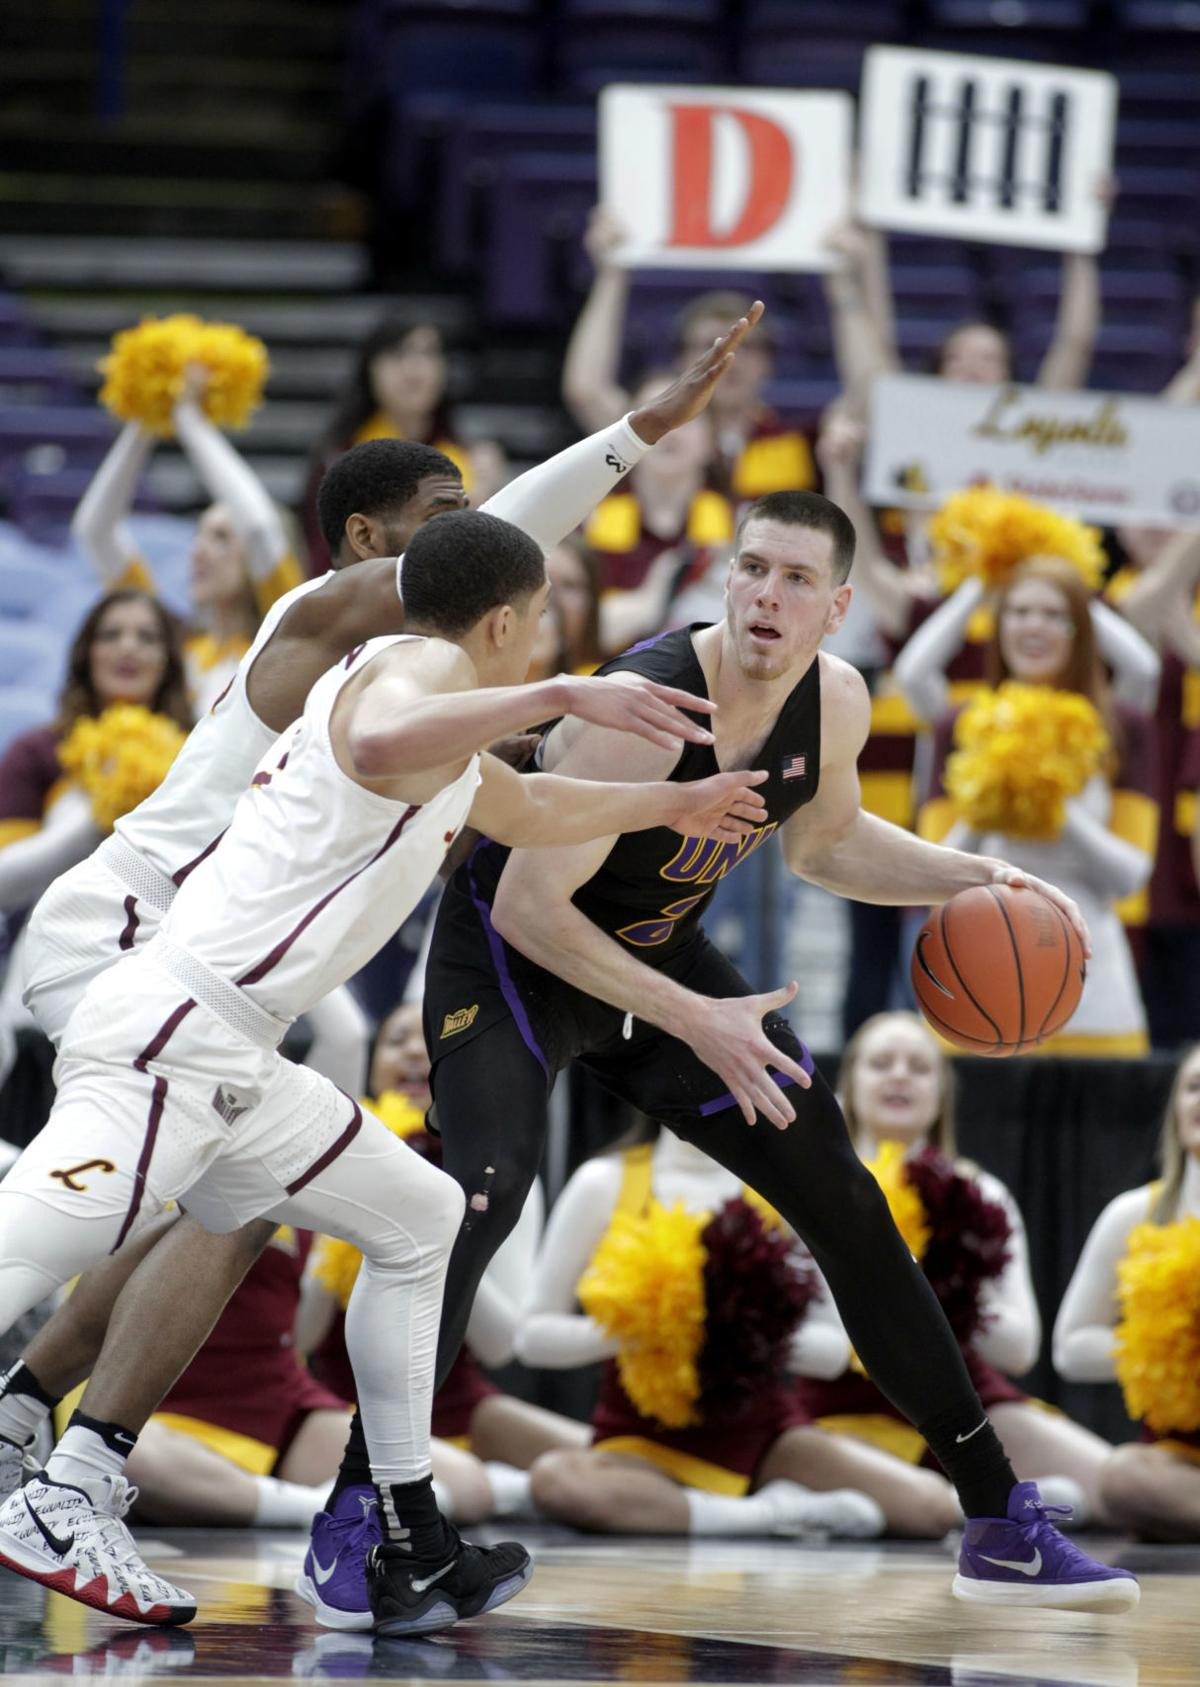 MVC Loyola Northern Iowa Basketball